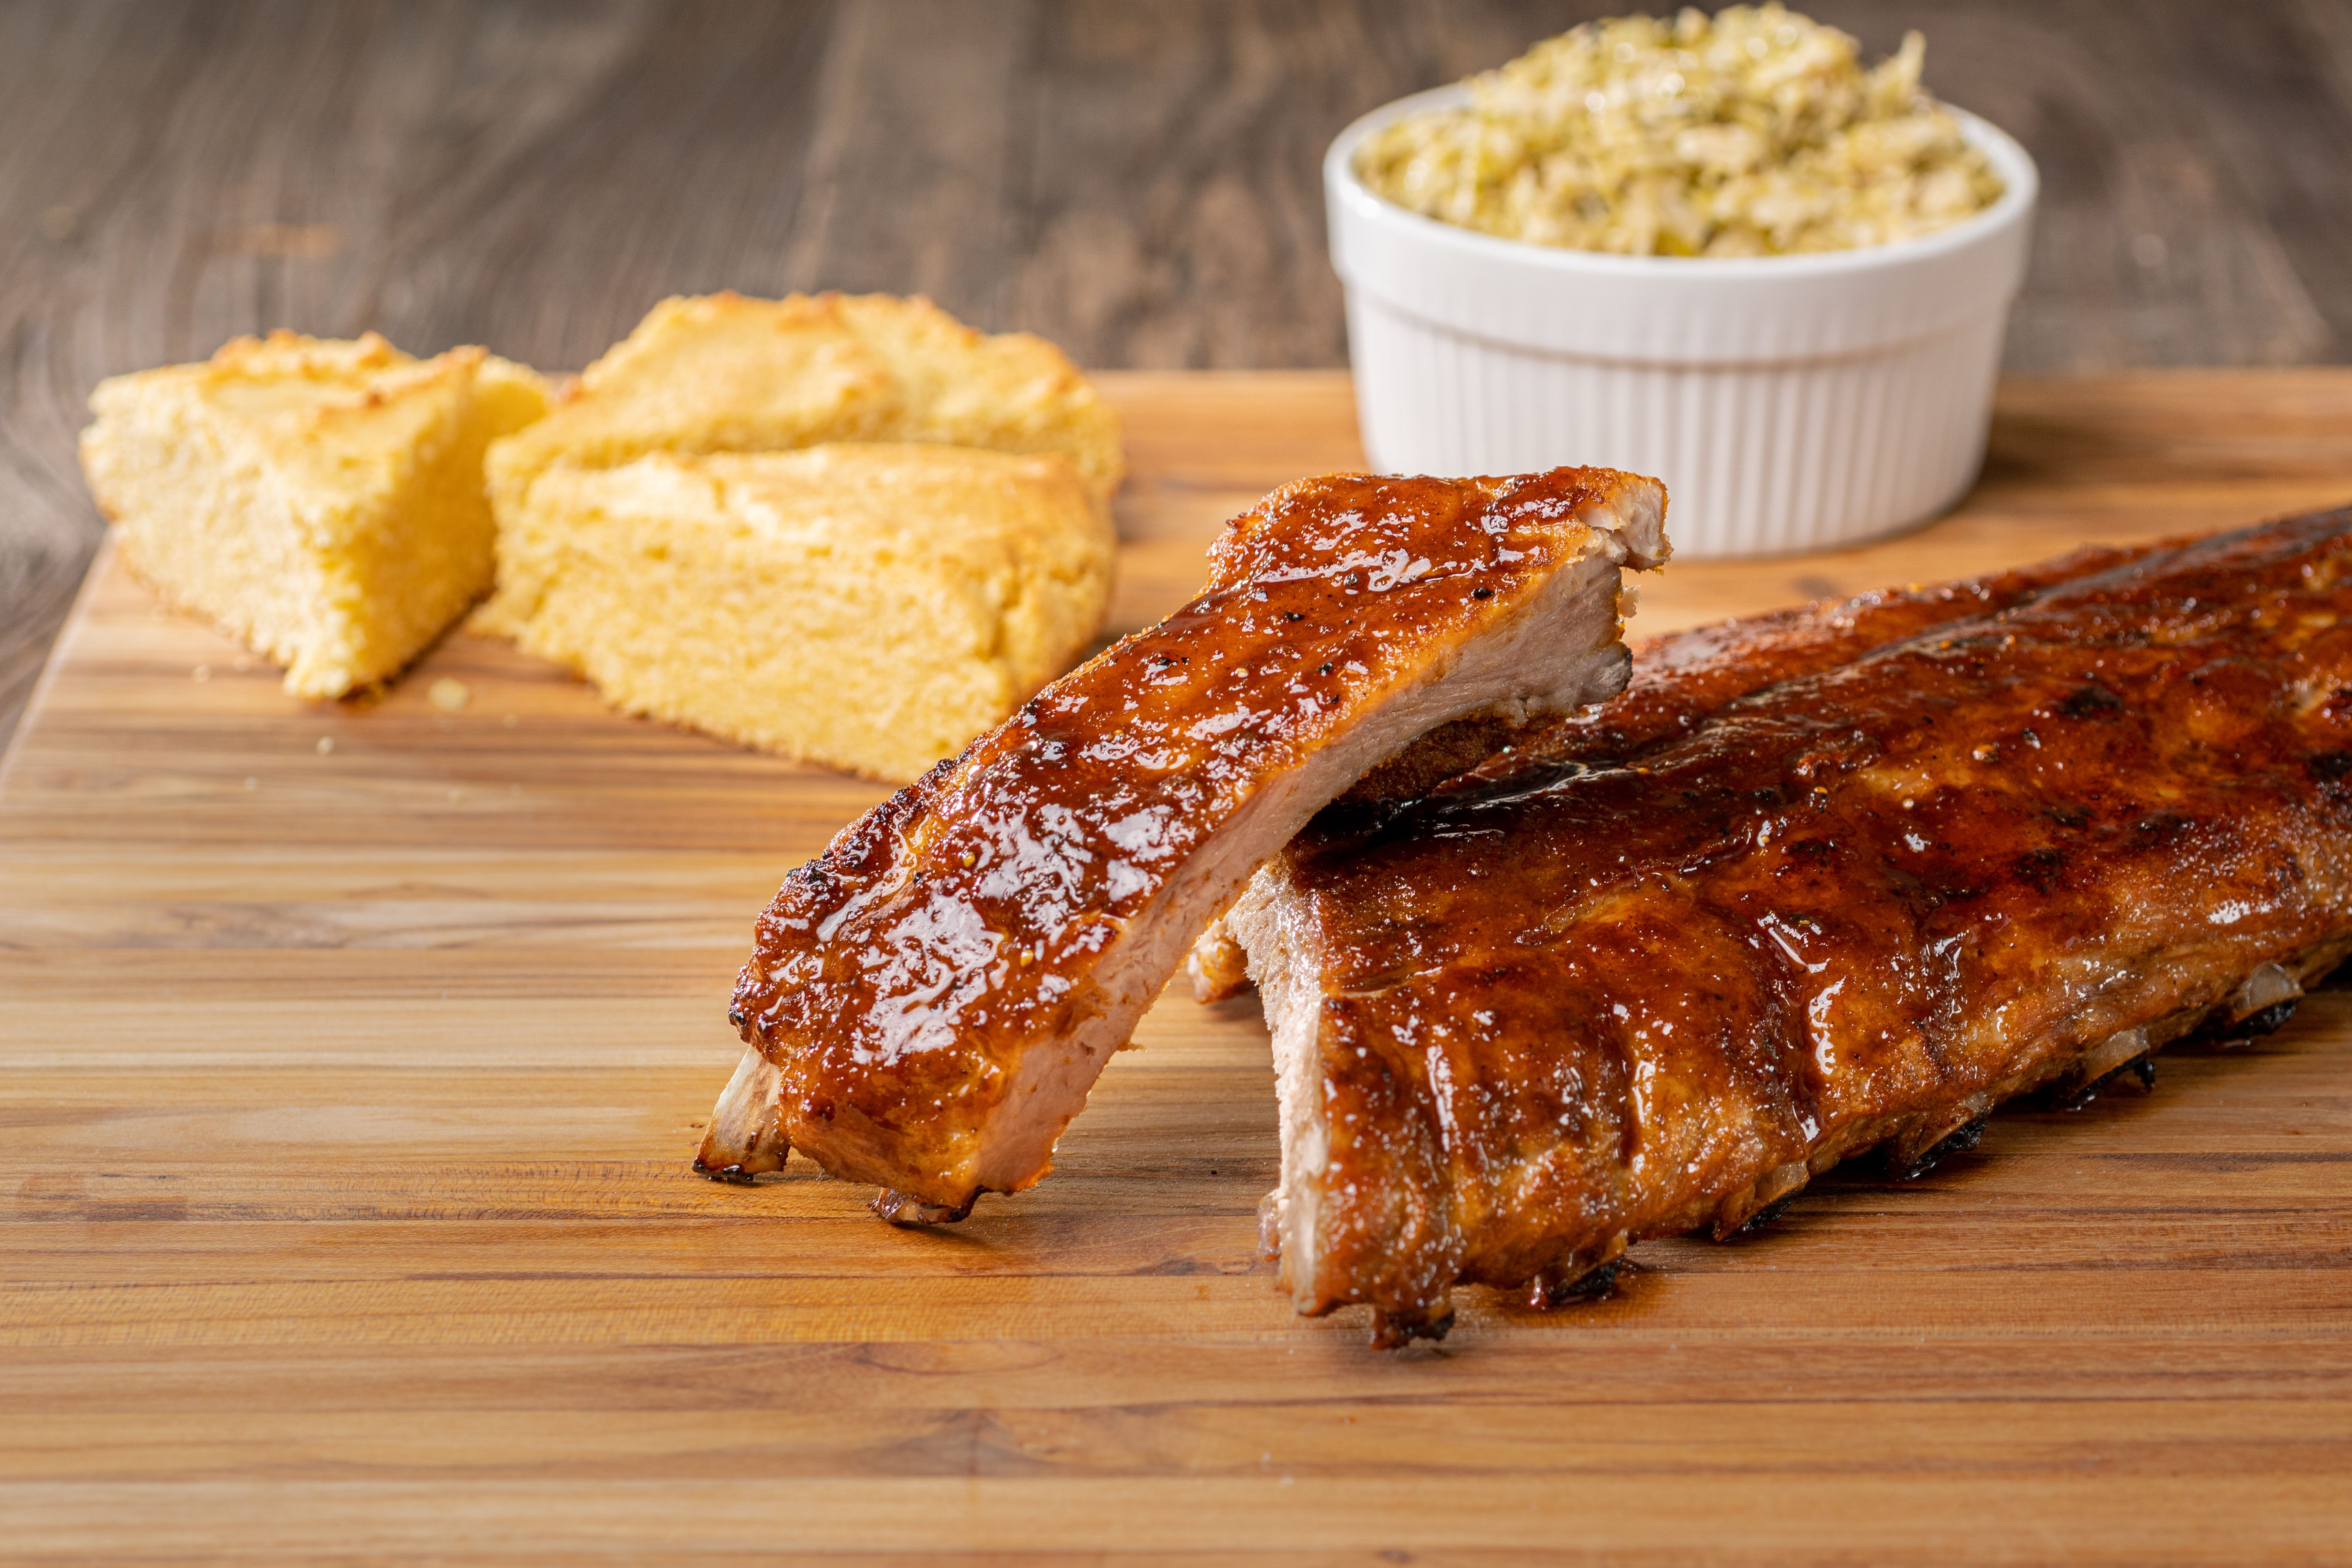 Slice rib sections and serve